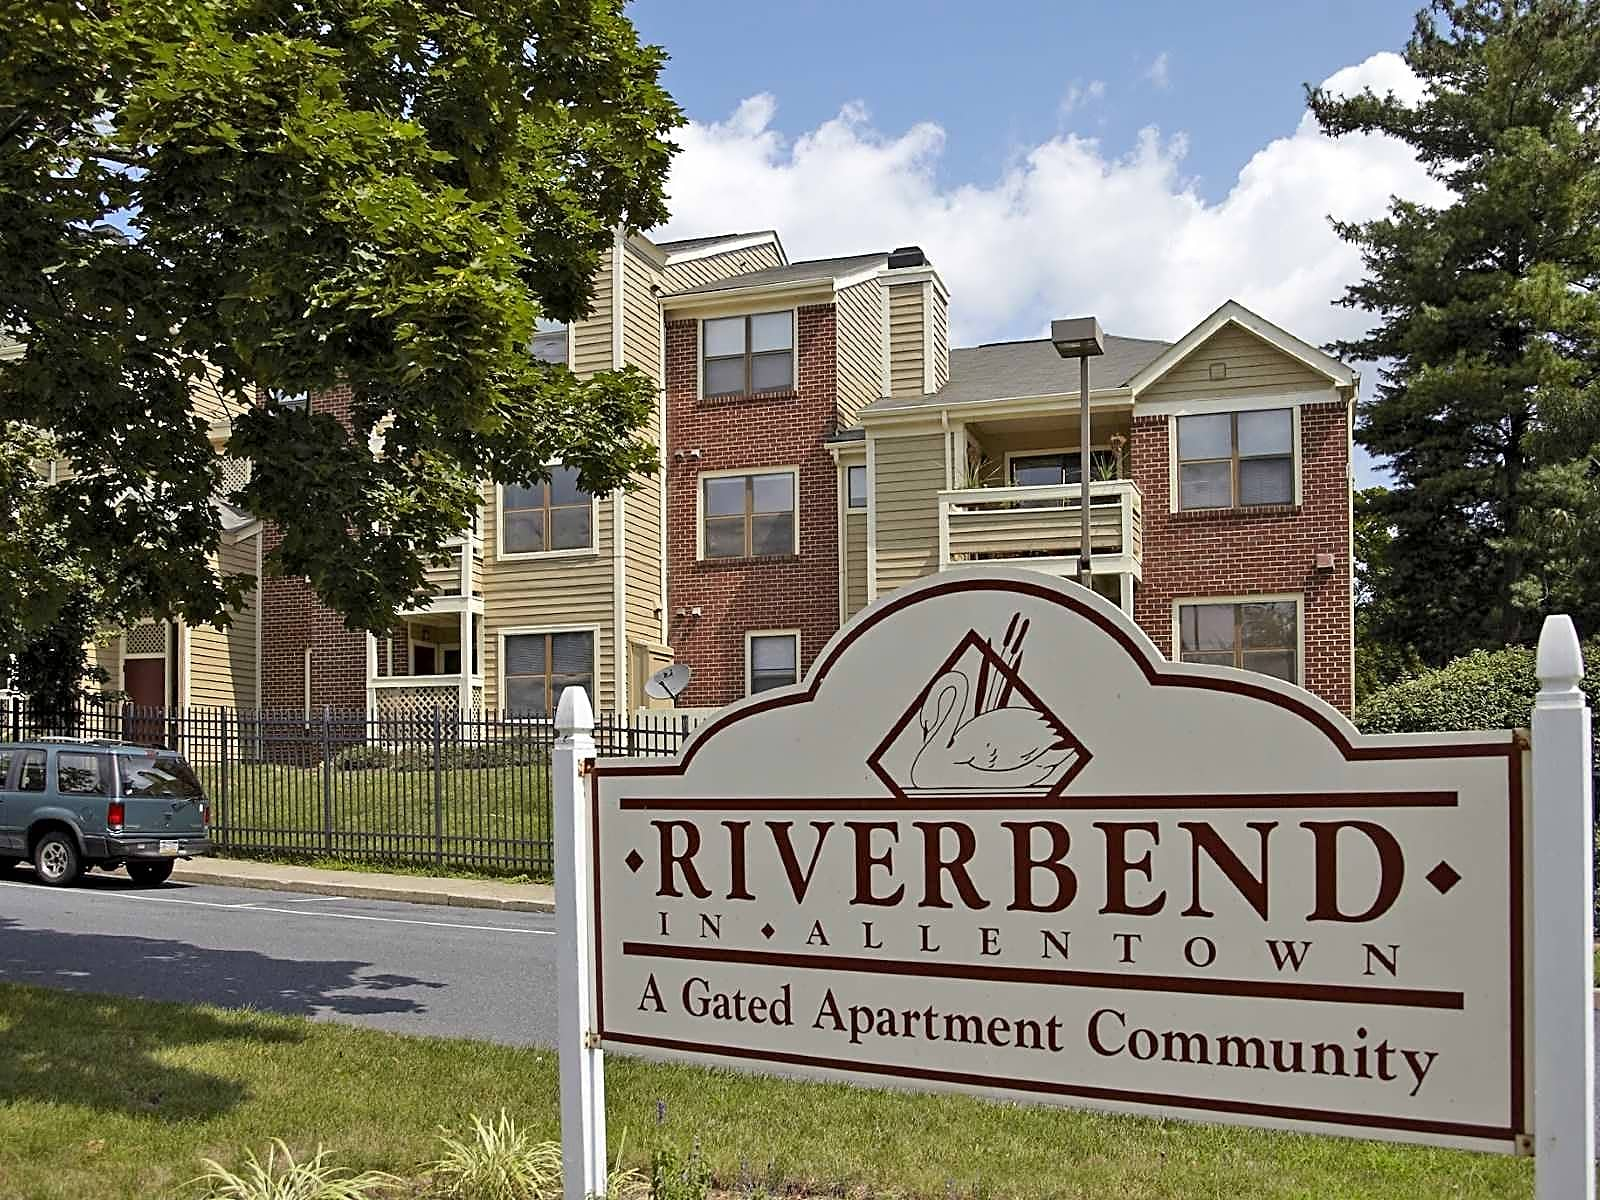 Riverbend In Allentown Apartments - Allentown, PA 18102